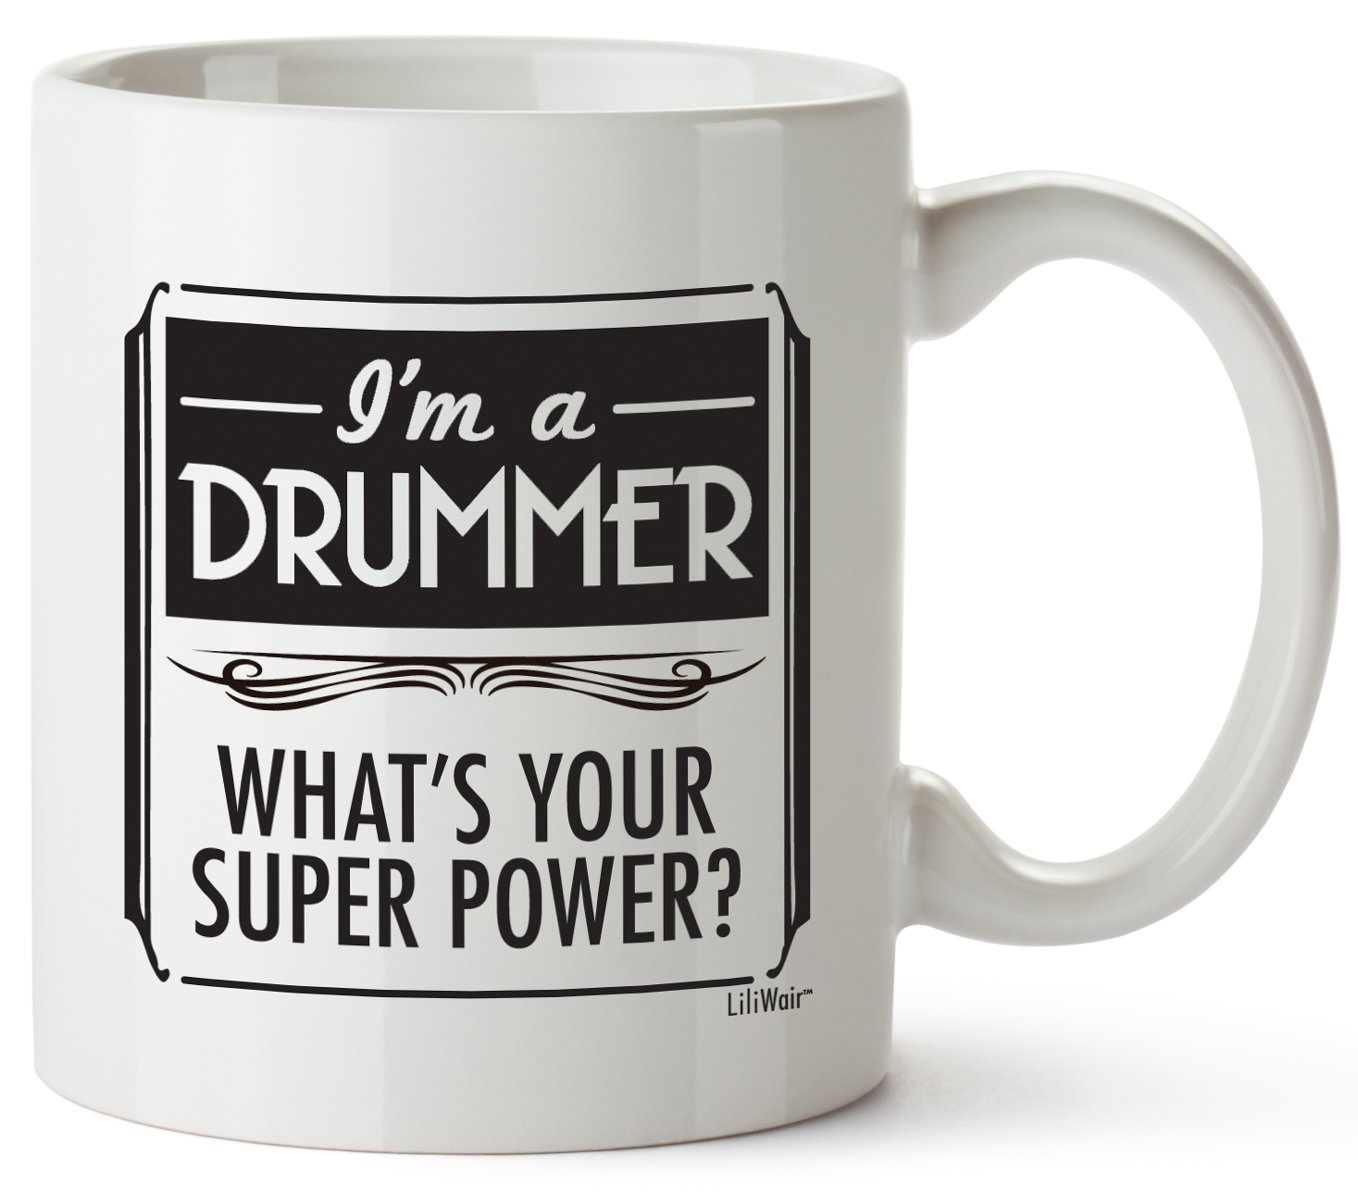 Fathers Day Gifts for Drummers Women Men Christmas Boyfriend Girlfriend Birthday Unique Best Cheap Funny Perfect Mug Drummers Girl Prime Gift Bag Mens Ideas Cool Dad Novelty Boyfriend Man Musician by LiliWair